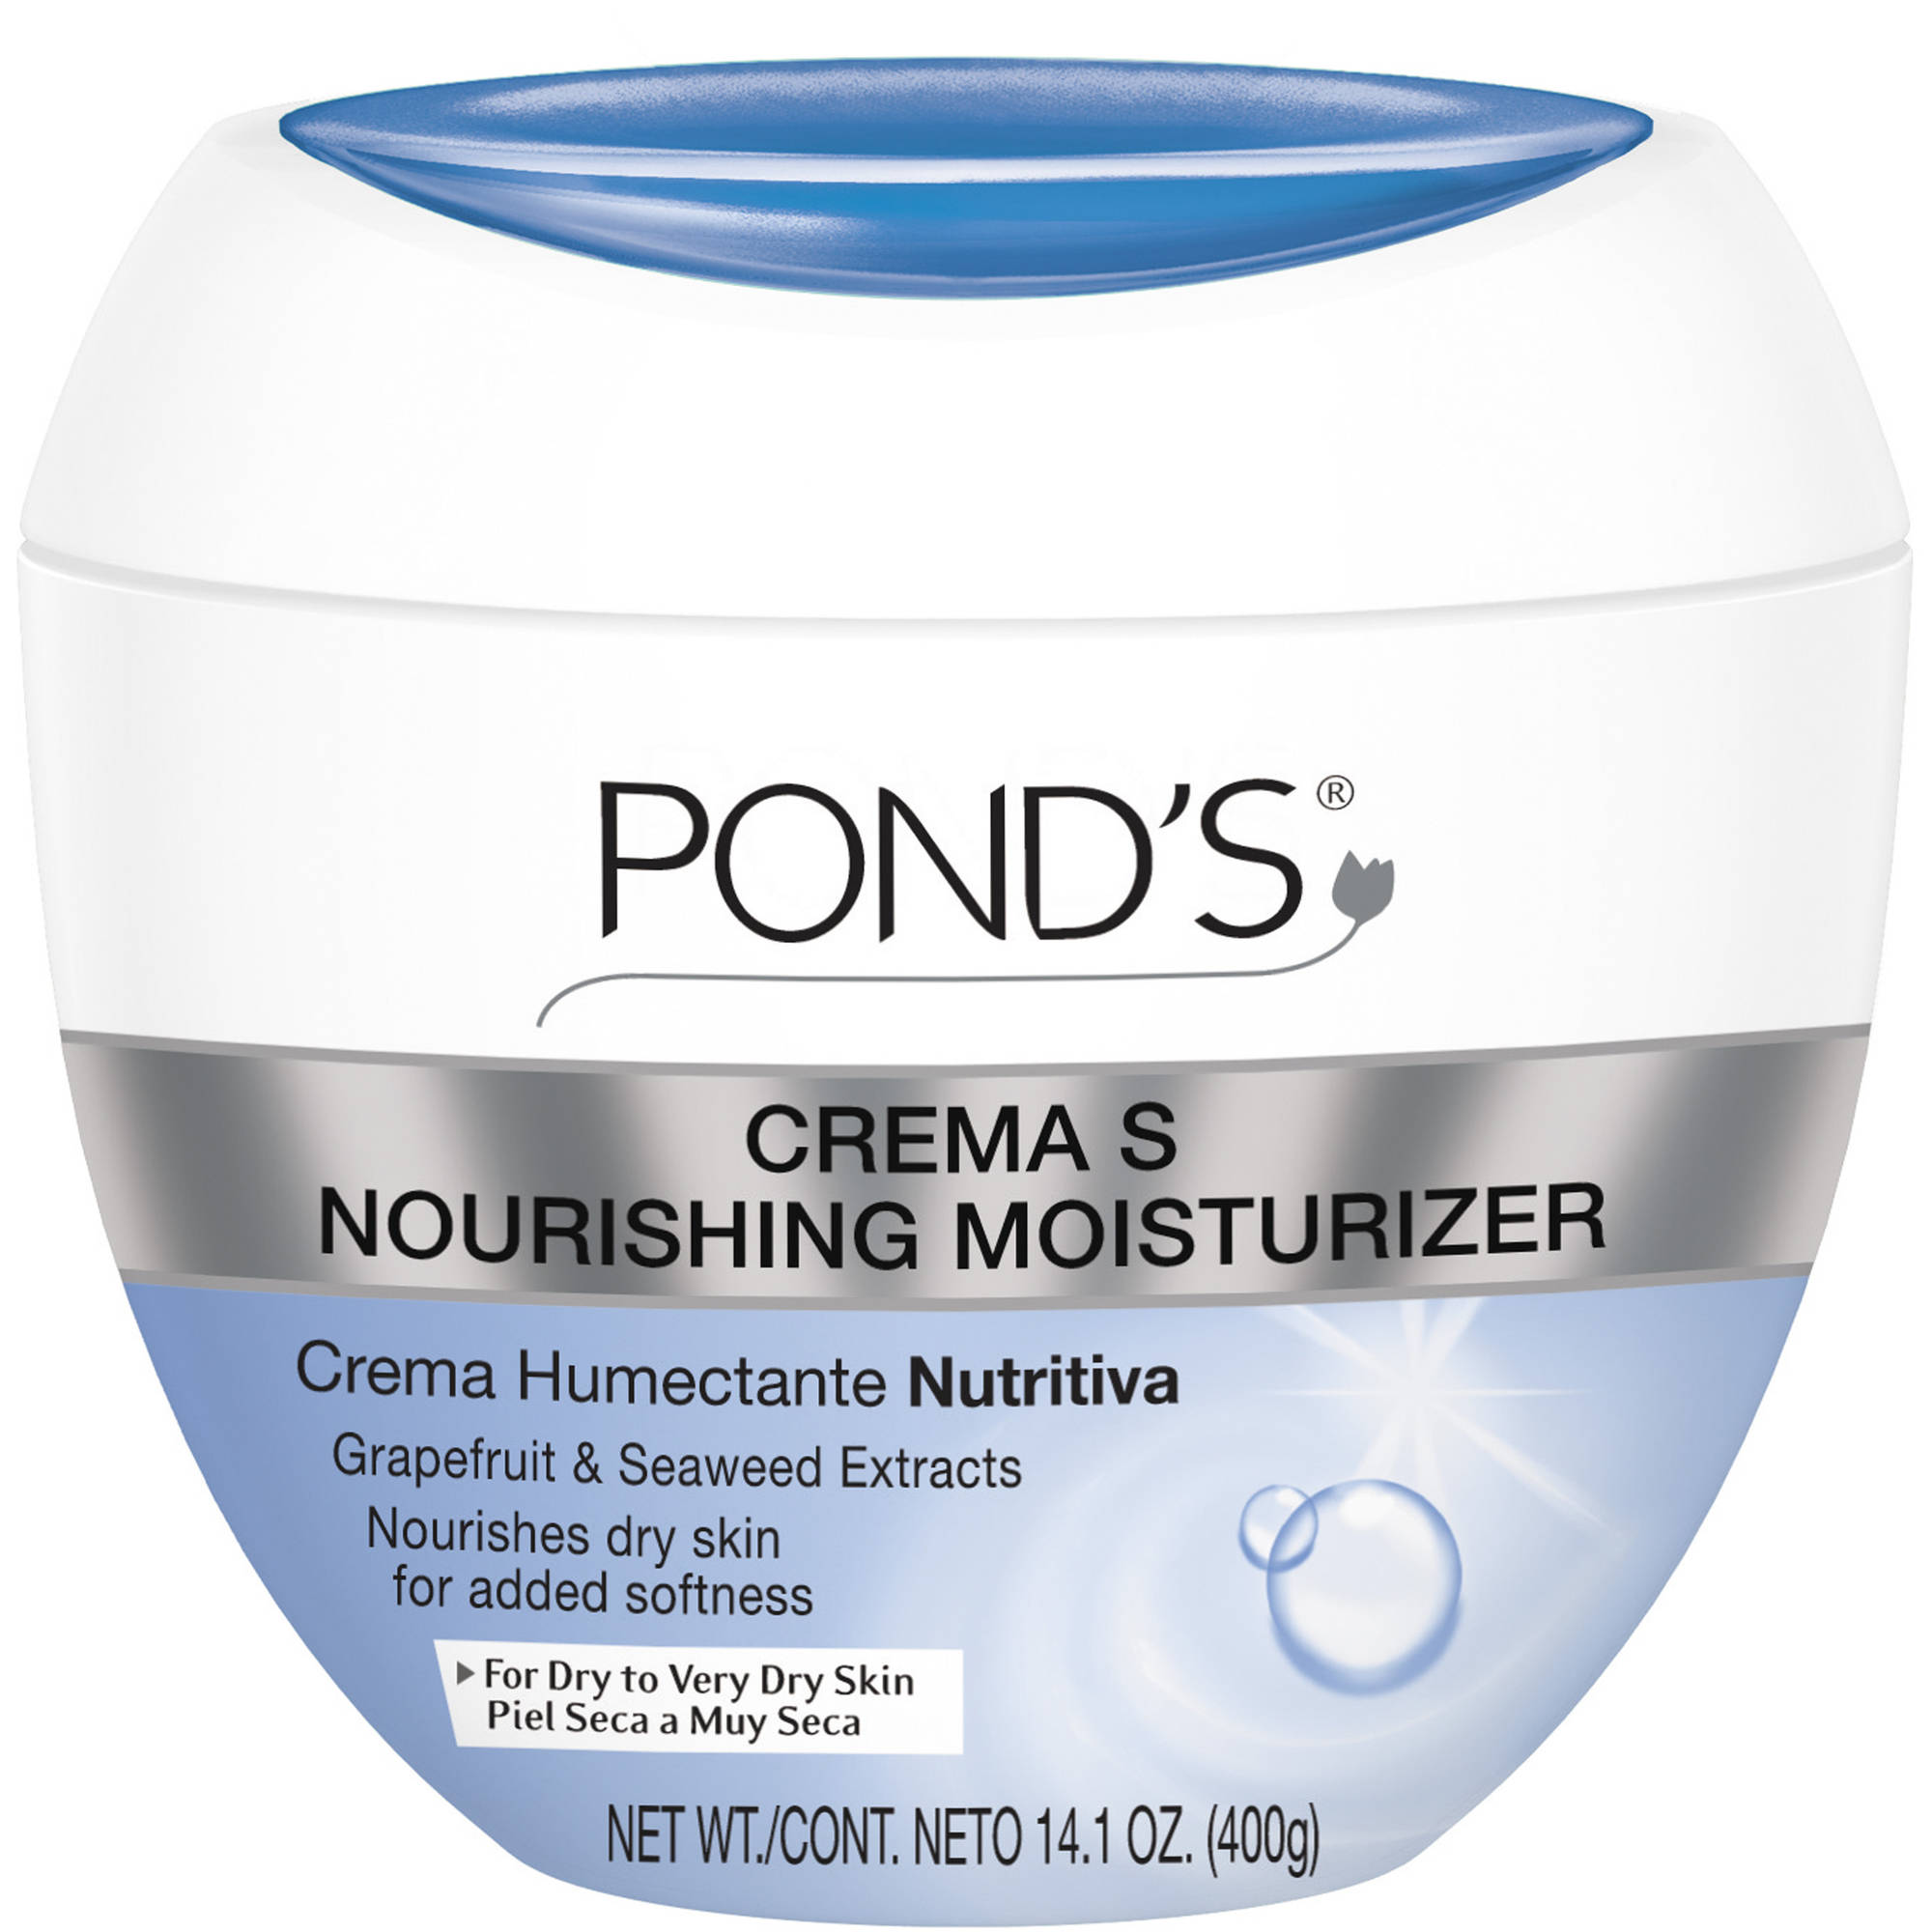 Pond's Crema S Nourishing Moisturizing Cream, 14.1 oz